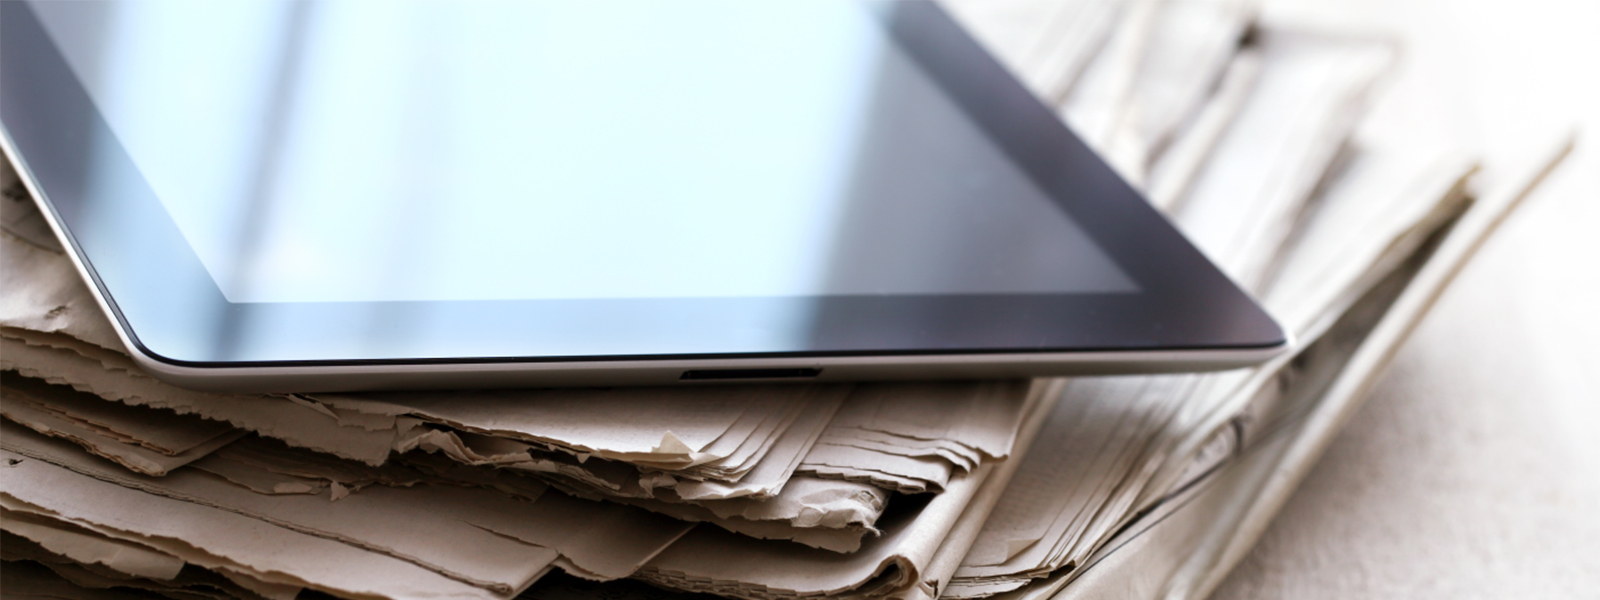 Bundle of newspaper and a tablet computer